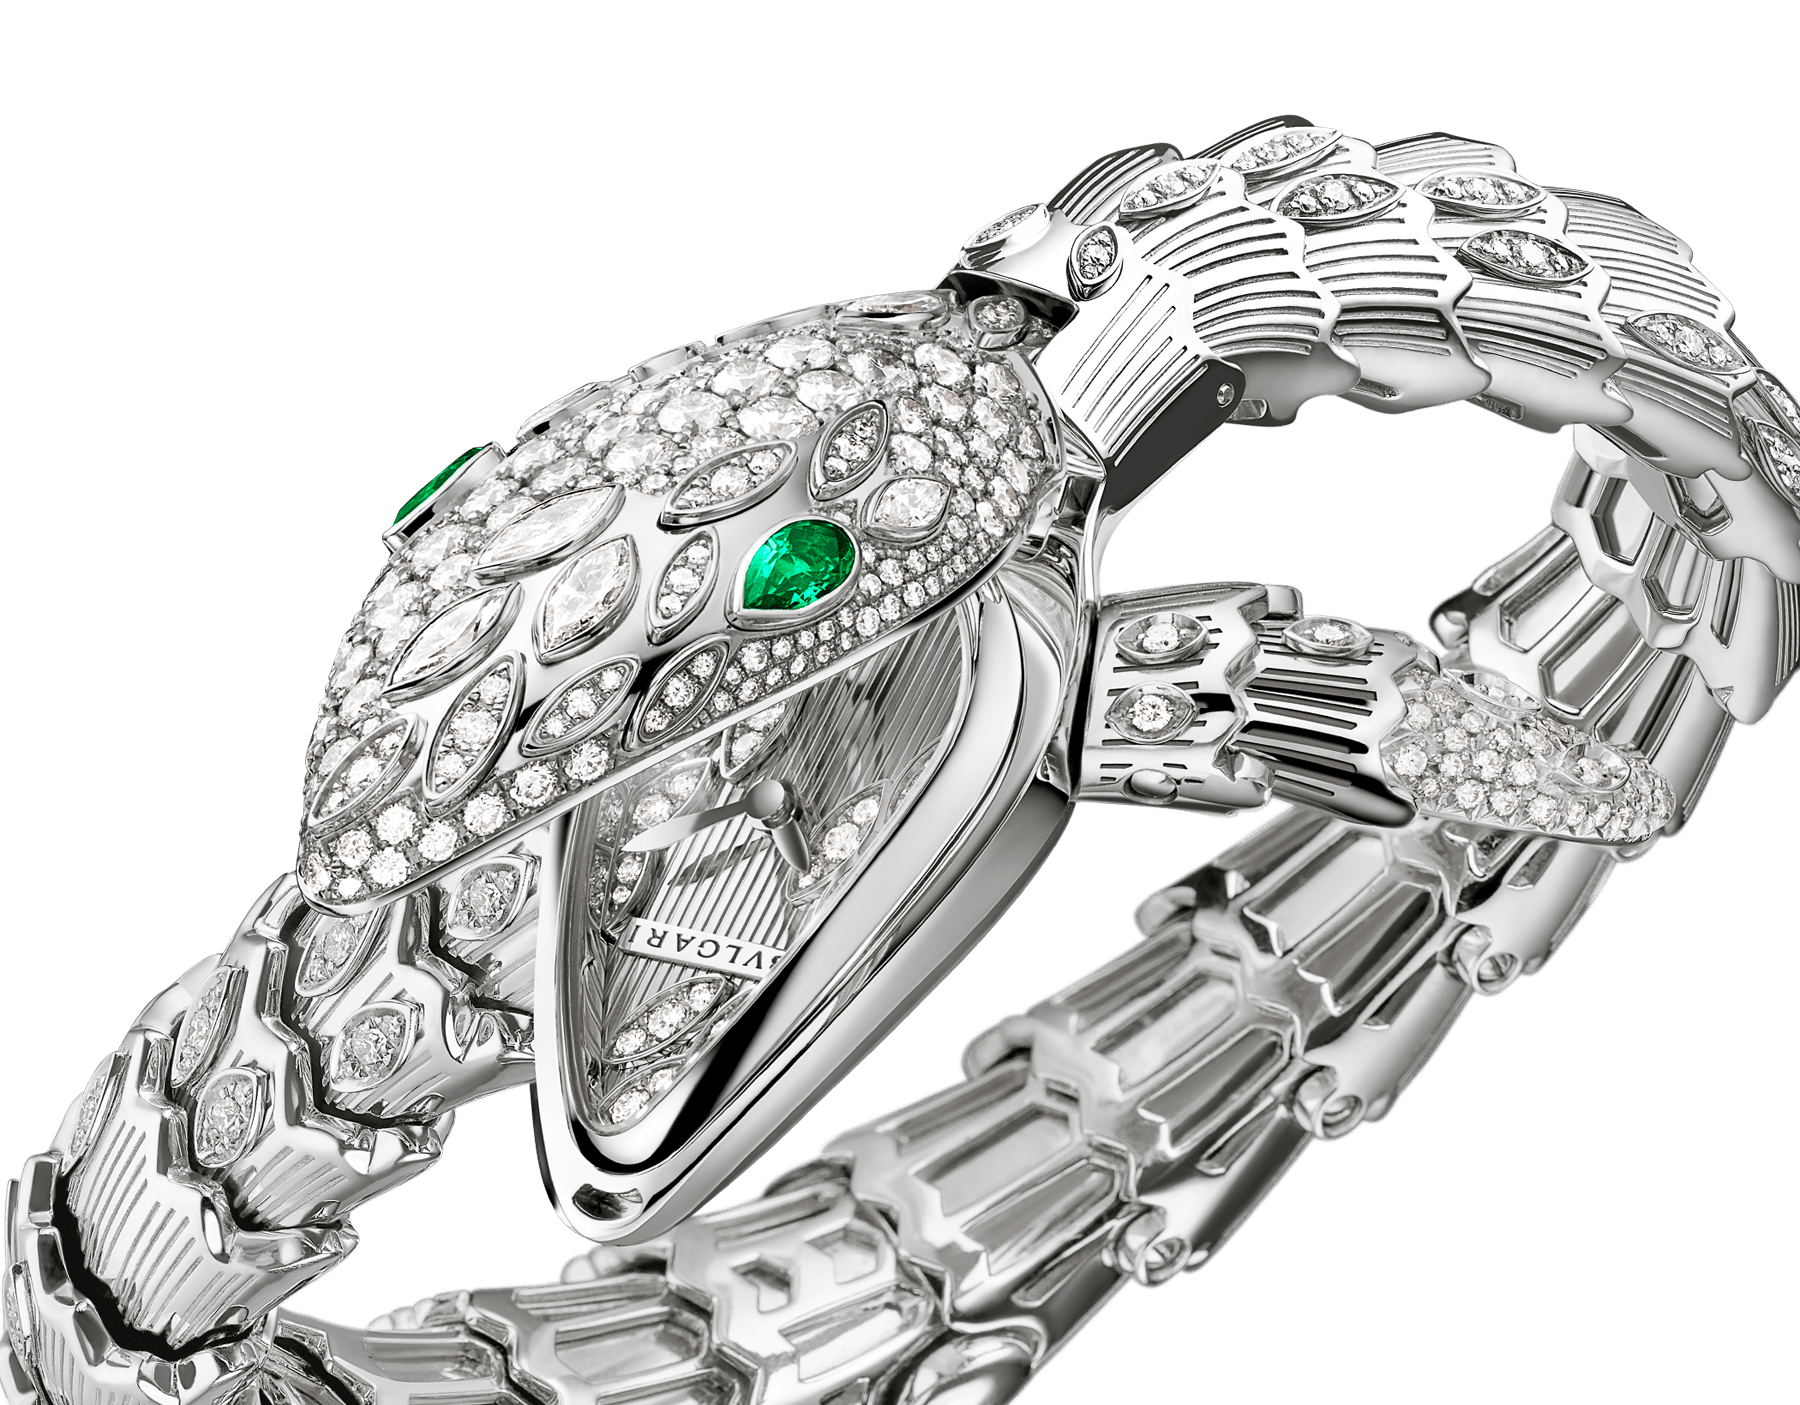 Serpenti Secret Watch with 18 kt white gold case, 18 kt white gold head, dial and single spiral bracelet all set with brilliant cut and marquise cut diamonds, and emerald eyes . 102238 image 2